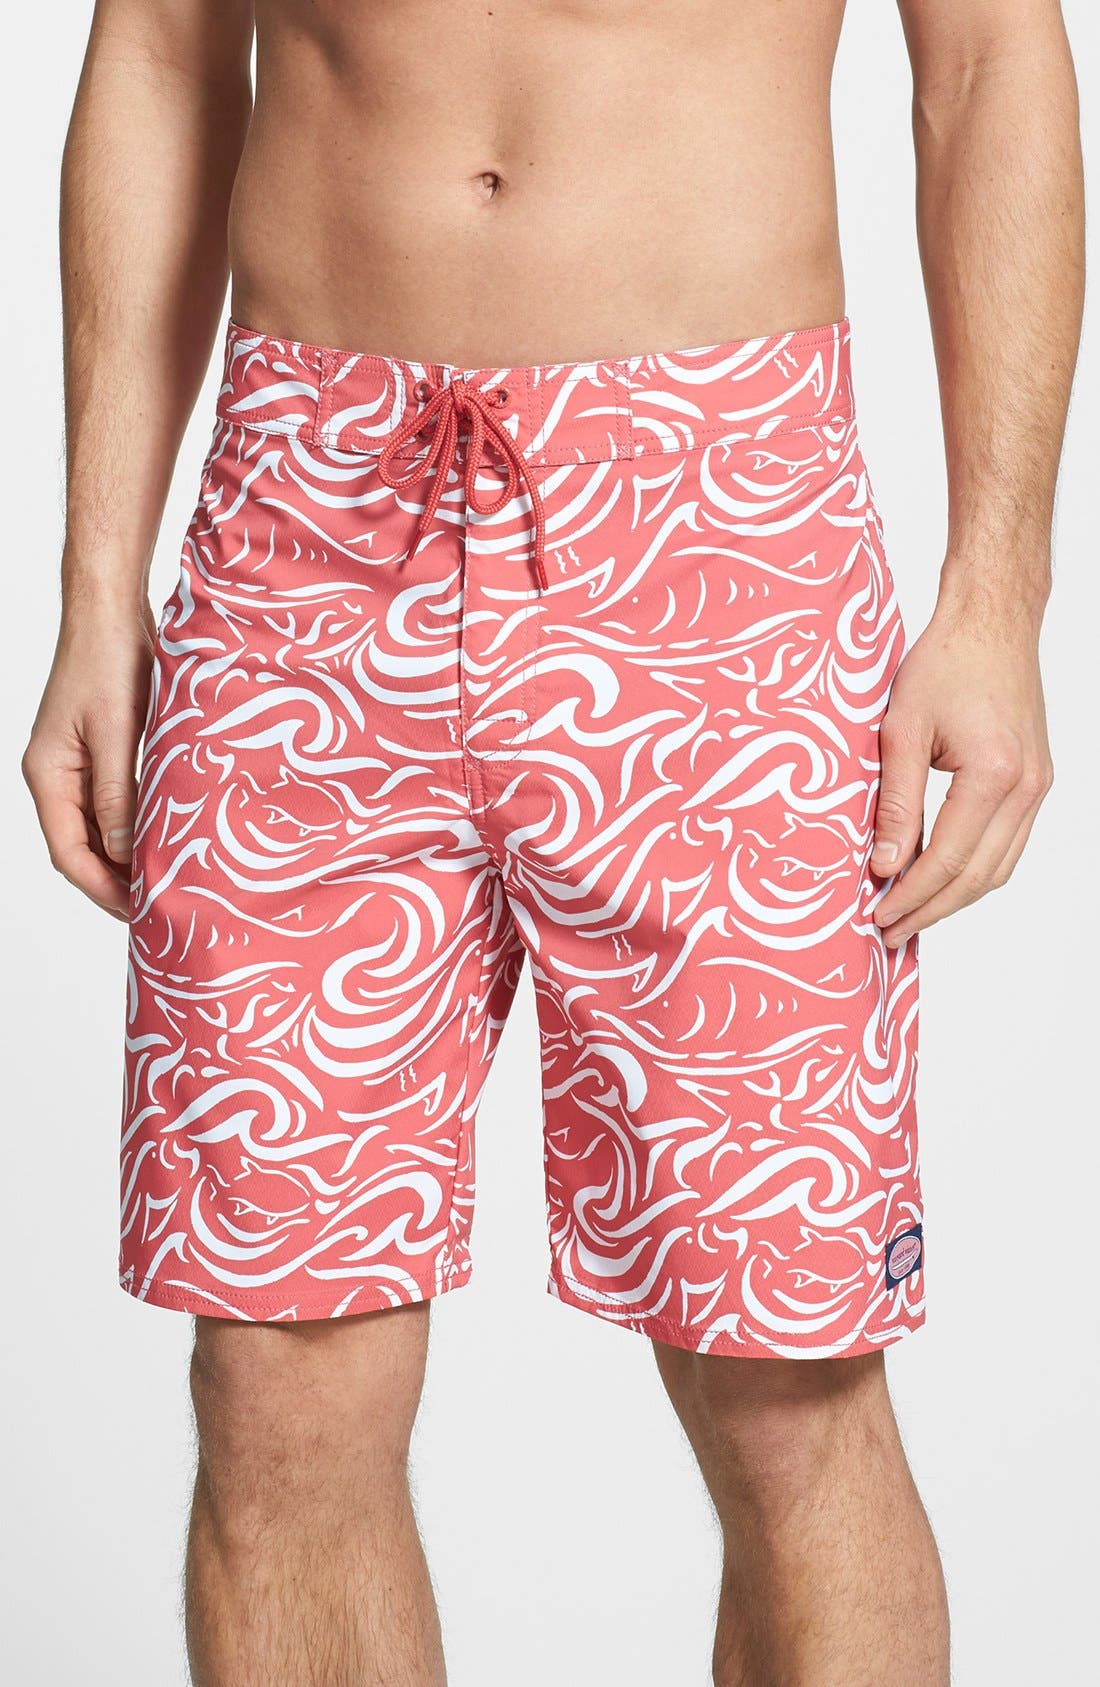 Alternate Image 1 Selected - Vineyard Vines 'Fish Swirl' Board Shorts